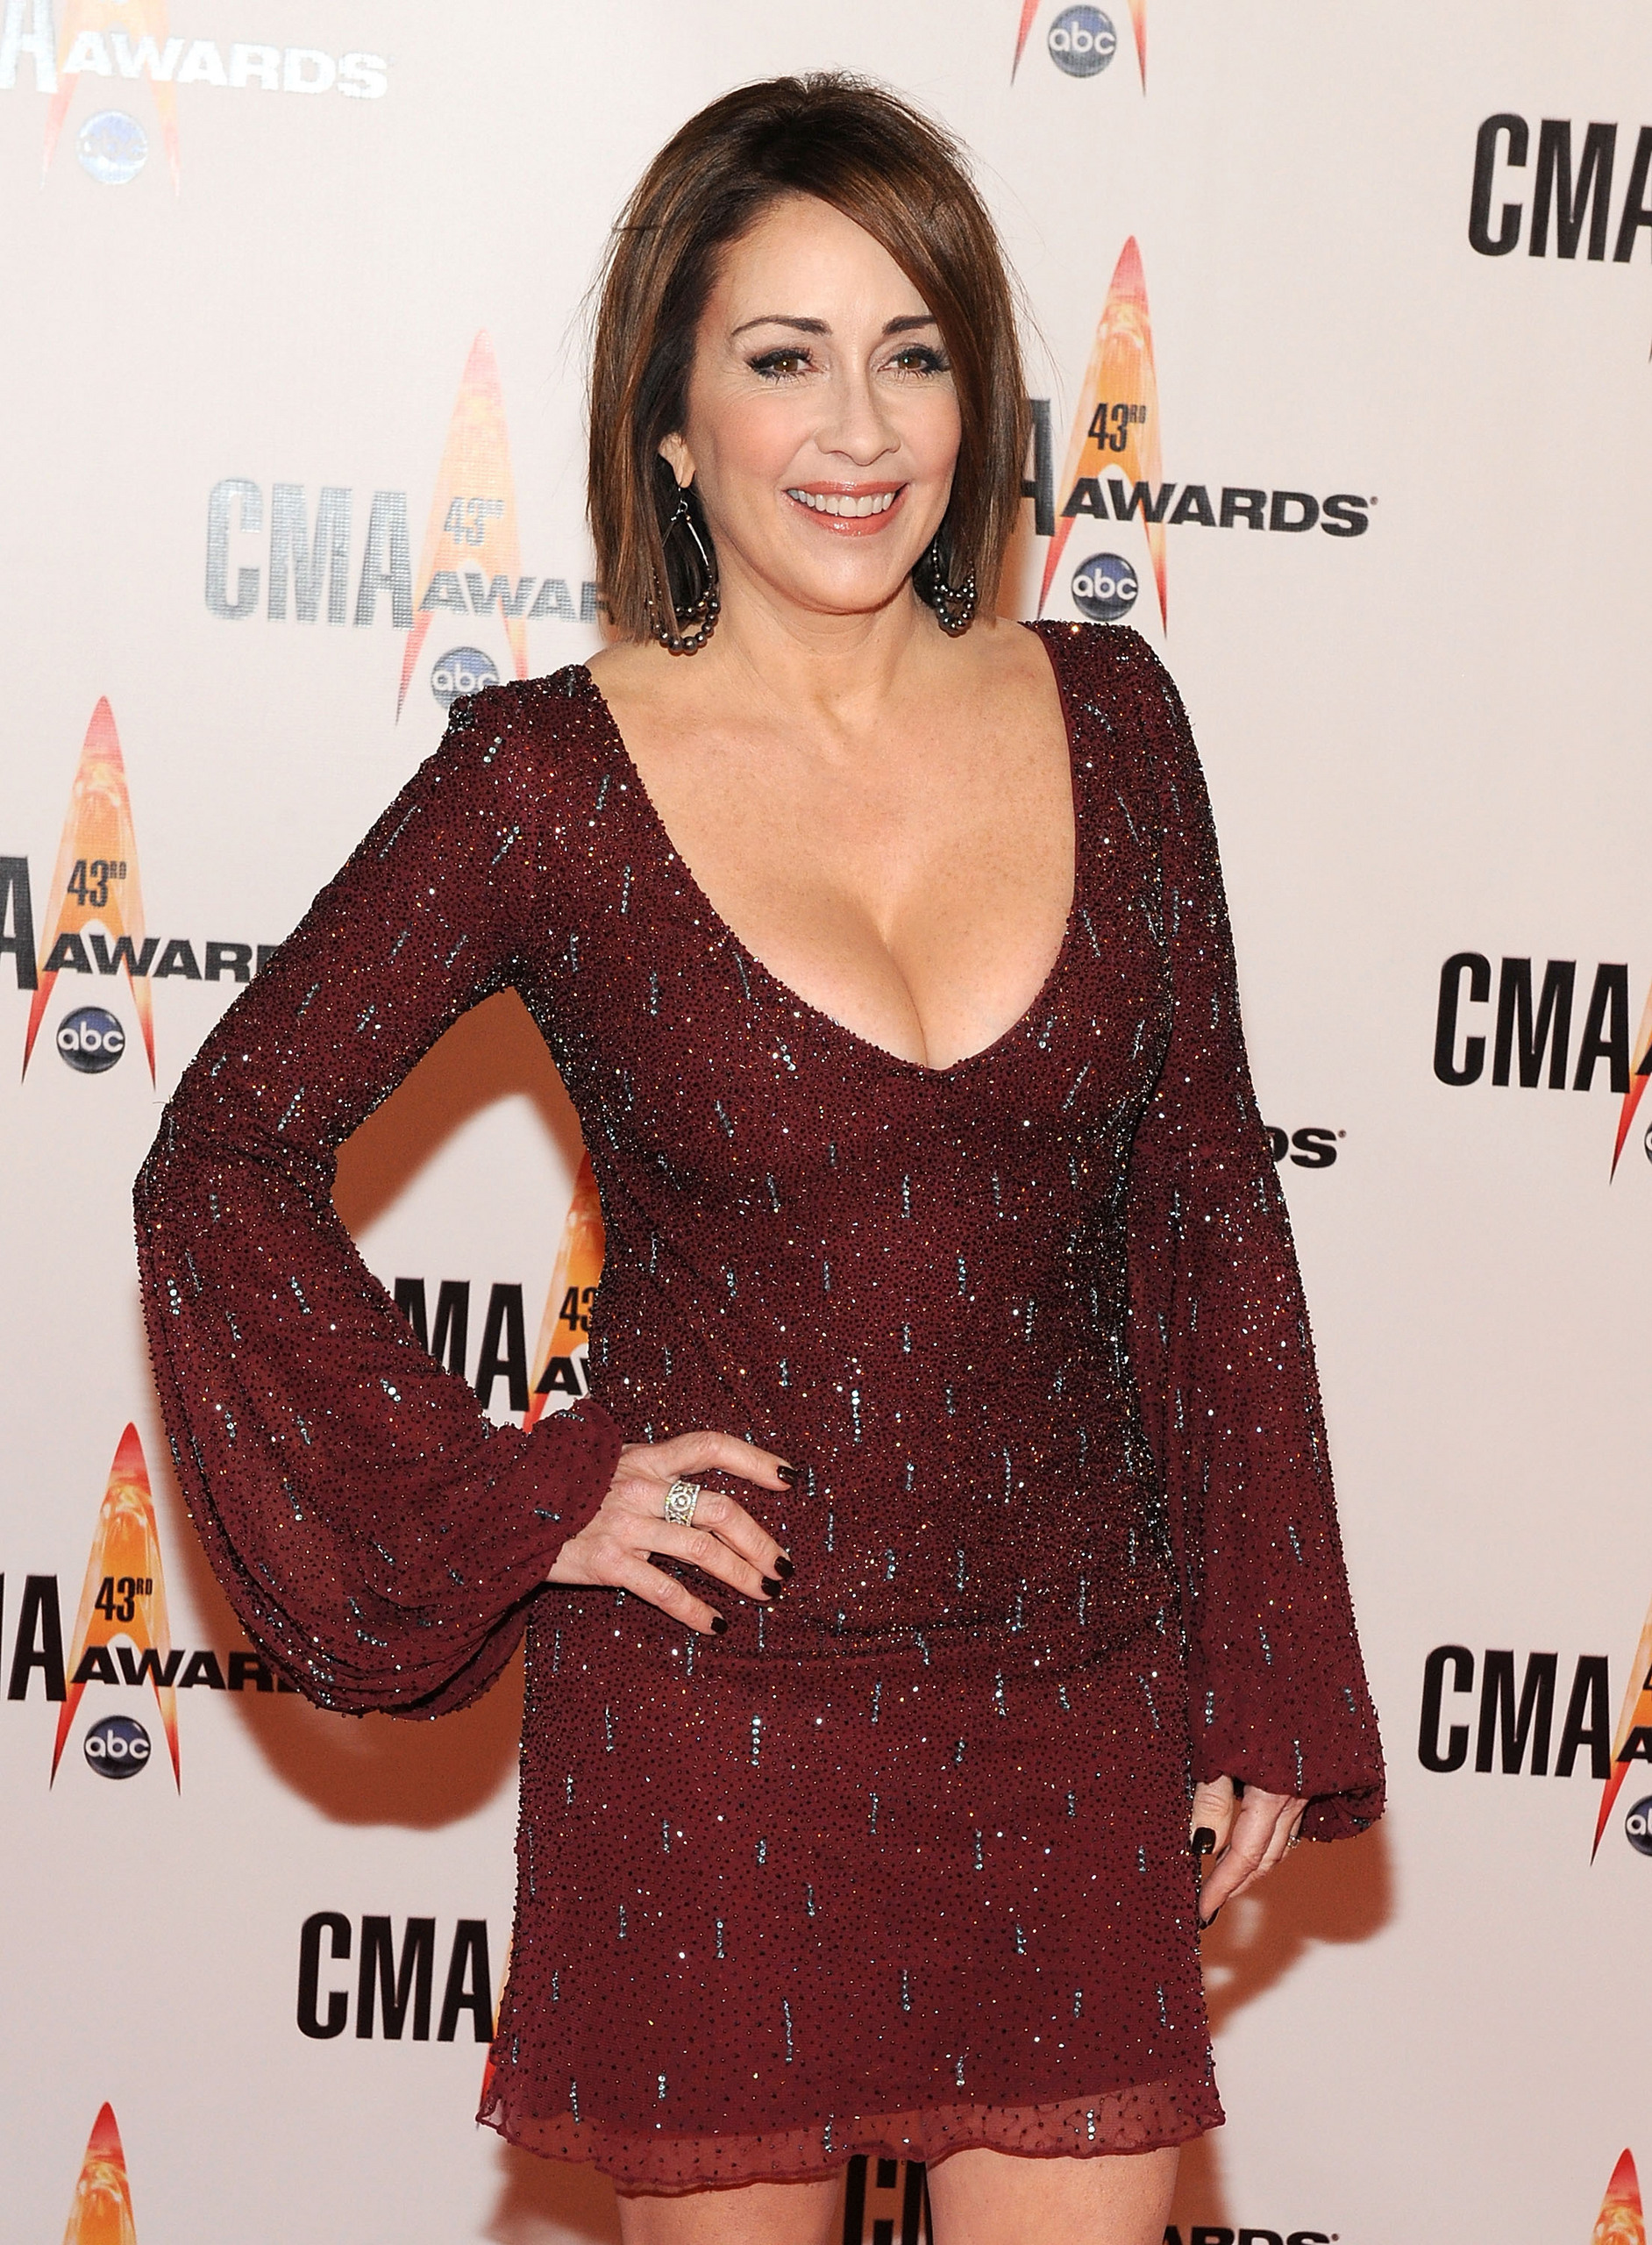 Patricia Heaton Hottest Pics, Leaked Topless Images